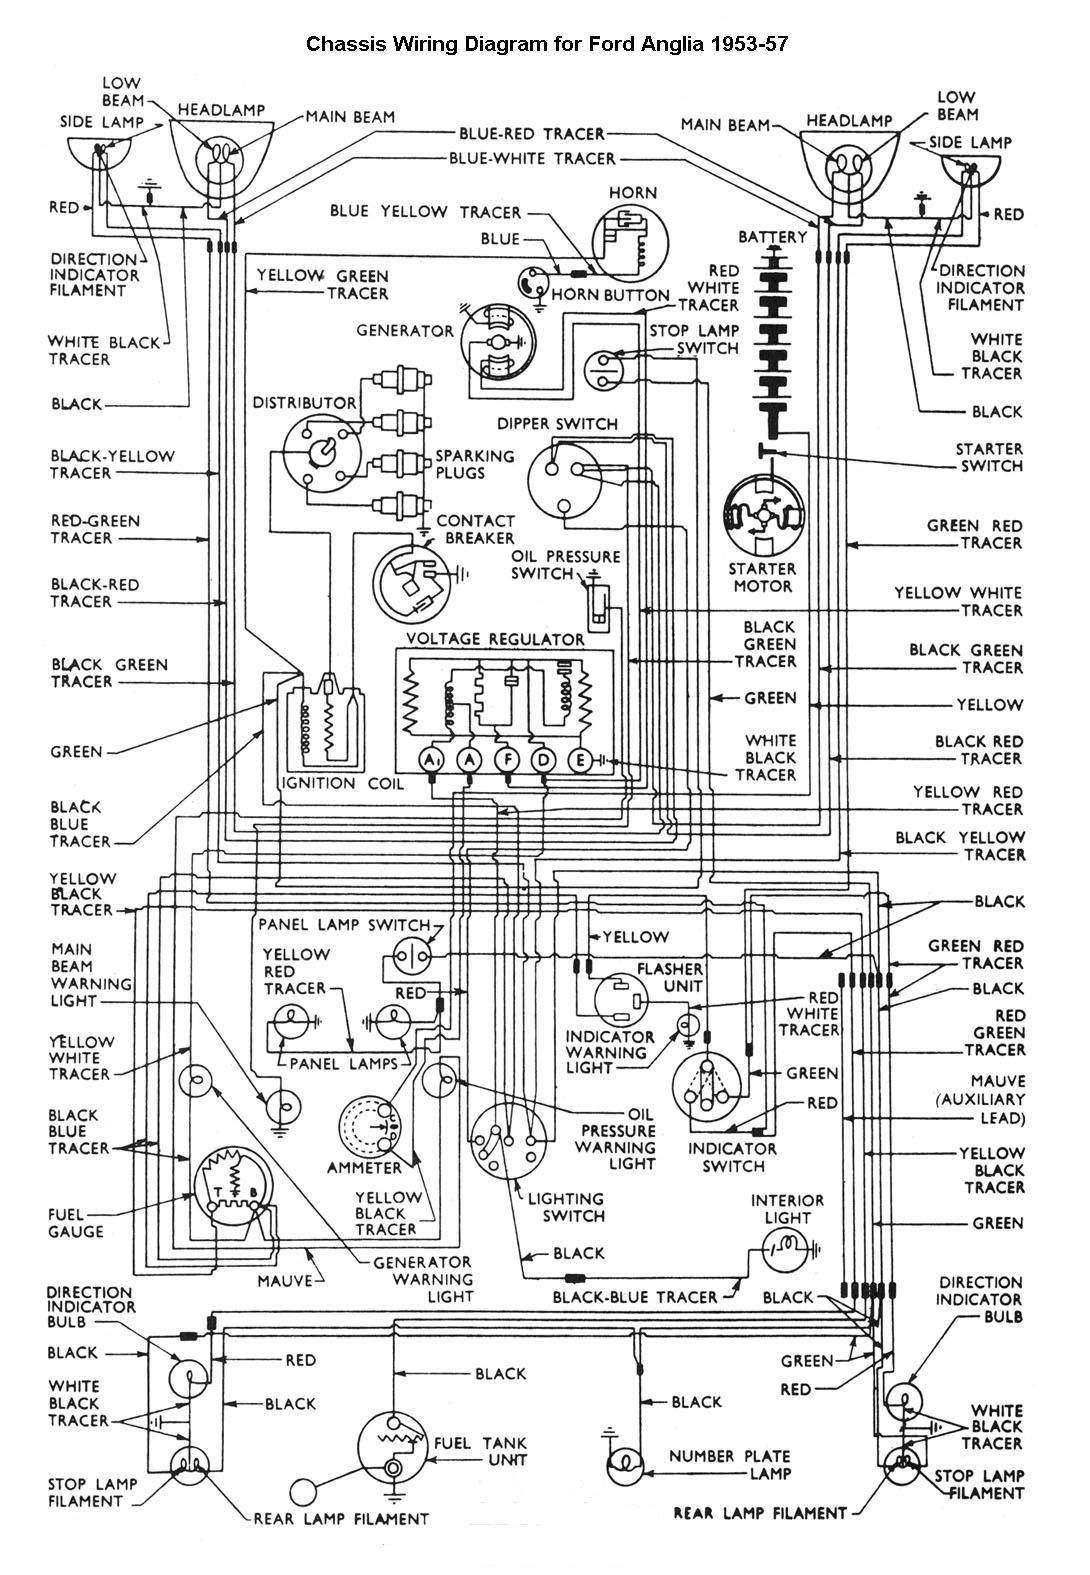 car wiring diagram mech truck repair cars automobile 1956 ford car wiring diagram [ 1090 x 1575 Pixel ]